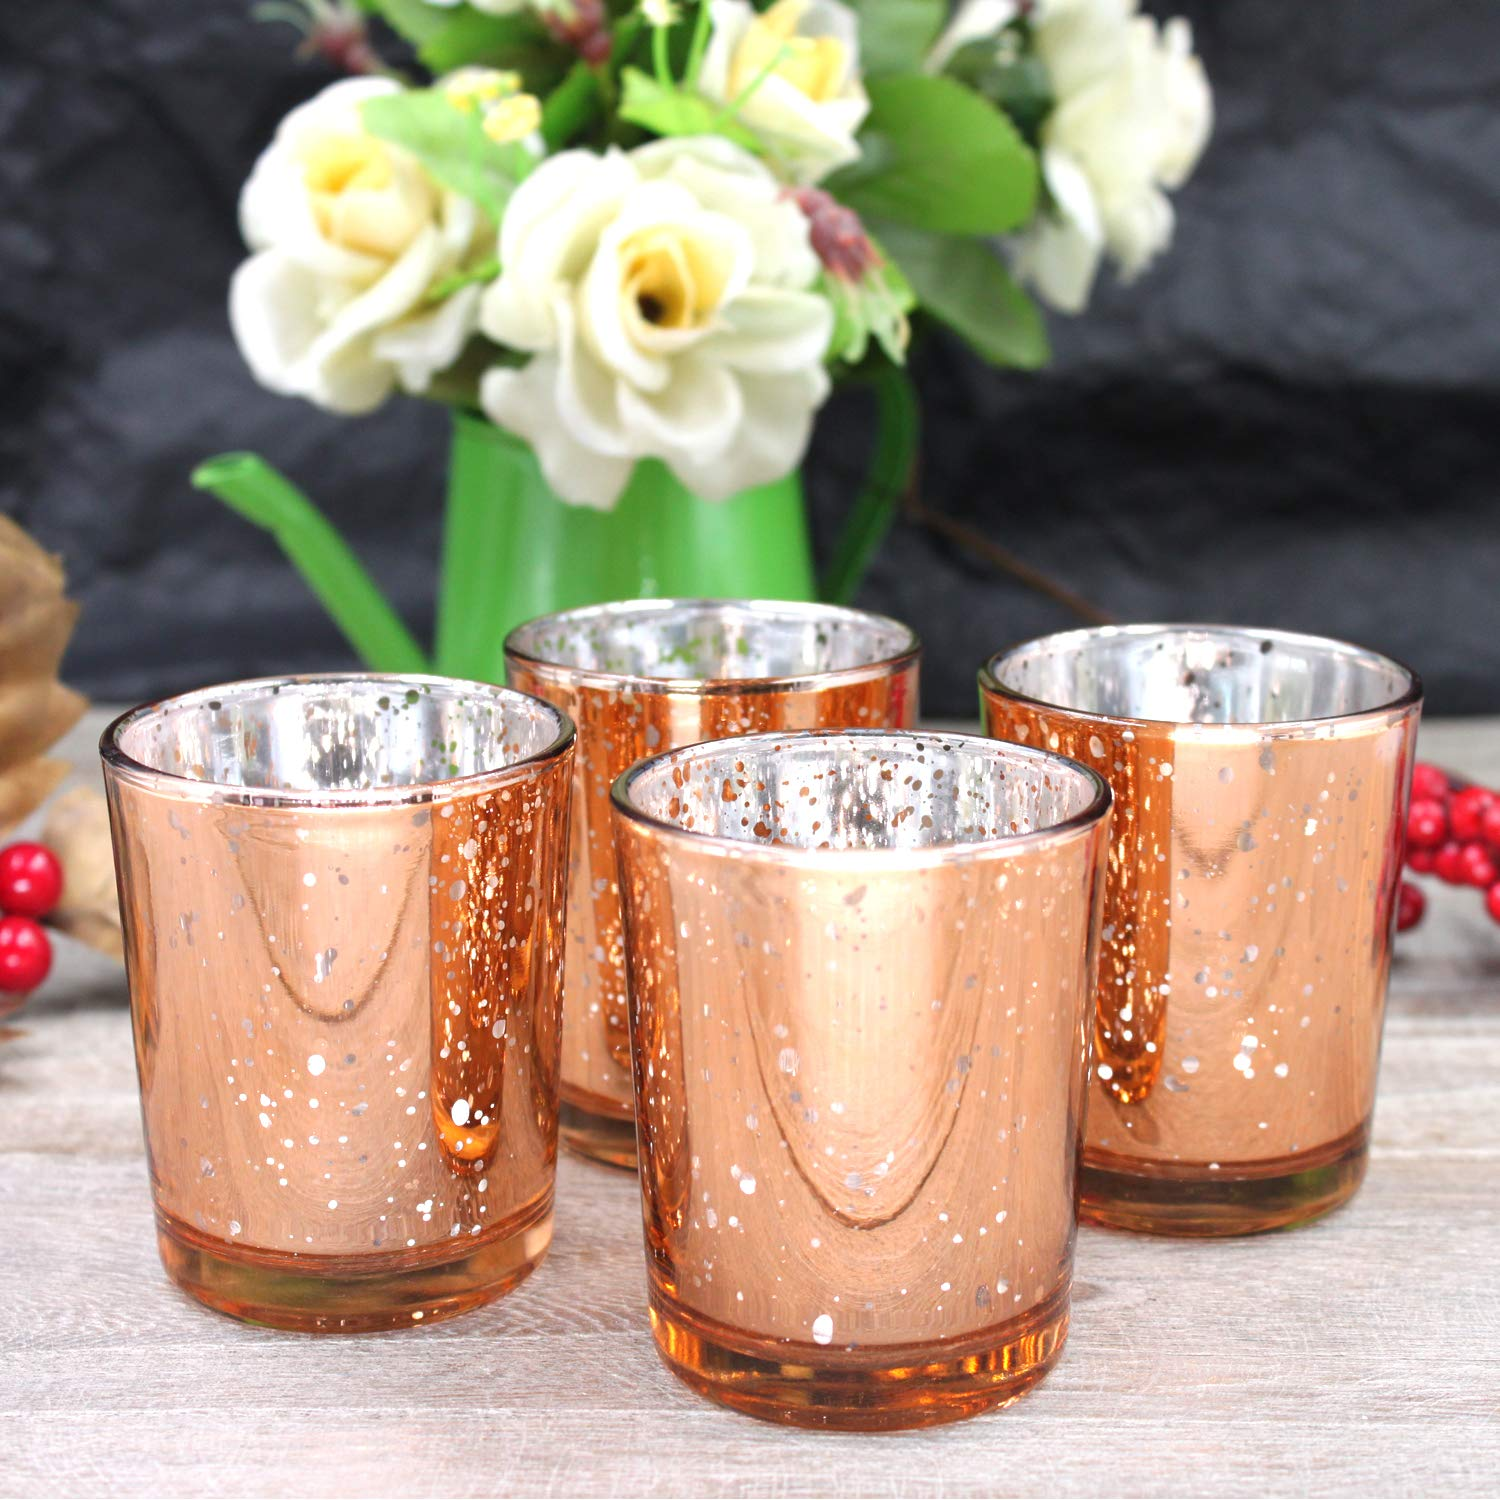 Glass Votive Candle Holders 2.64 Inches H (Set of 12, Speckled Rose Gold) - For Use with Tealights, Parties, Weddings,Spa,Aromatherapy and Home Decor